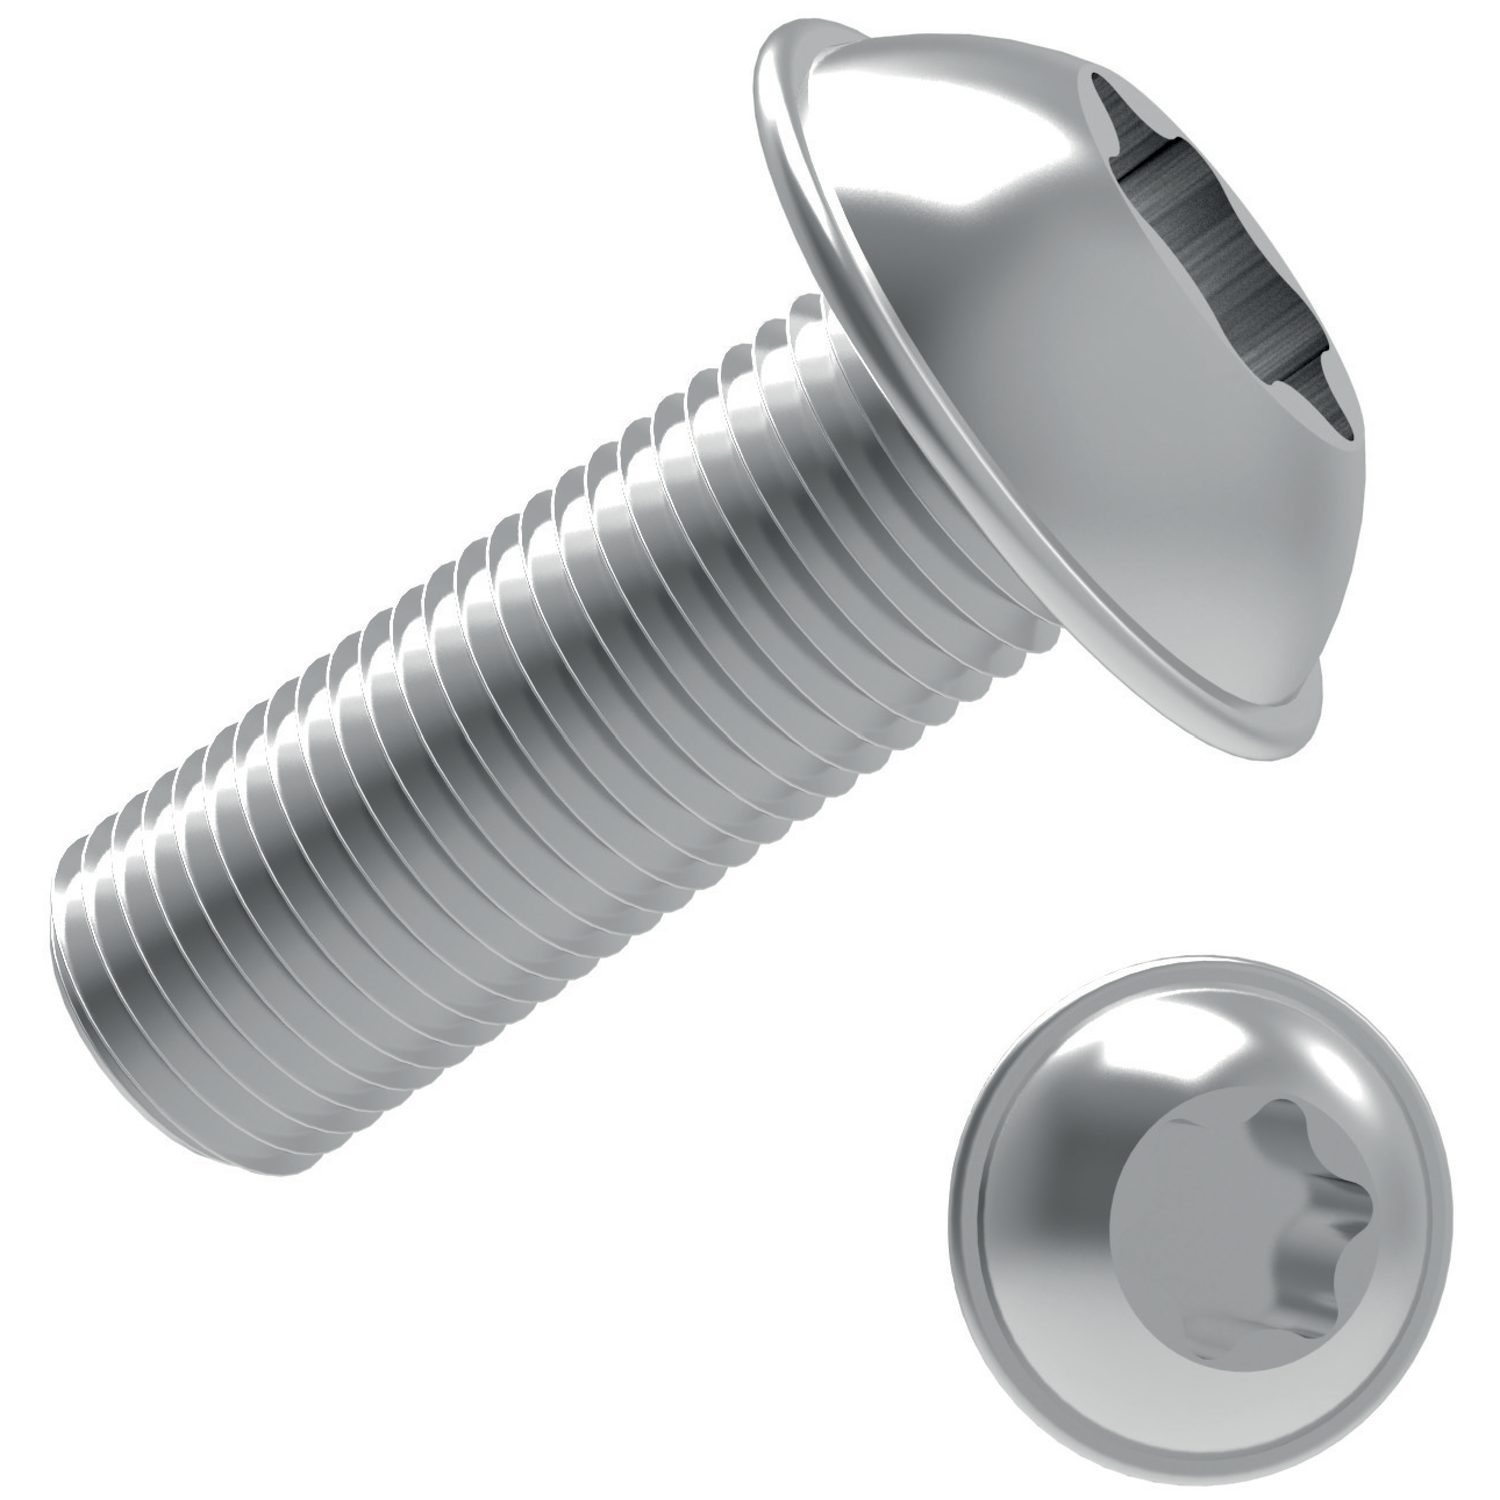 P0215.A2 - Flanged TX Button Screws